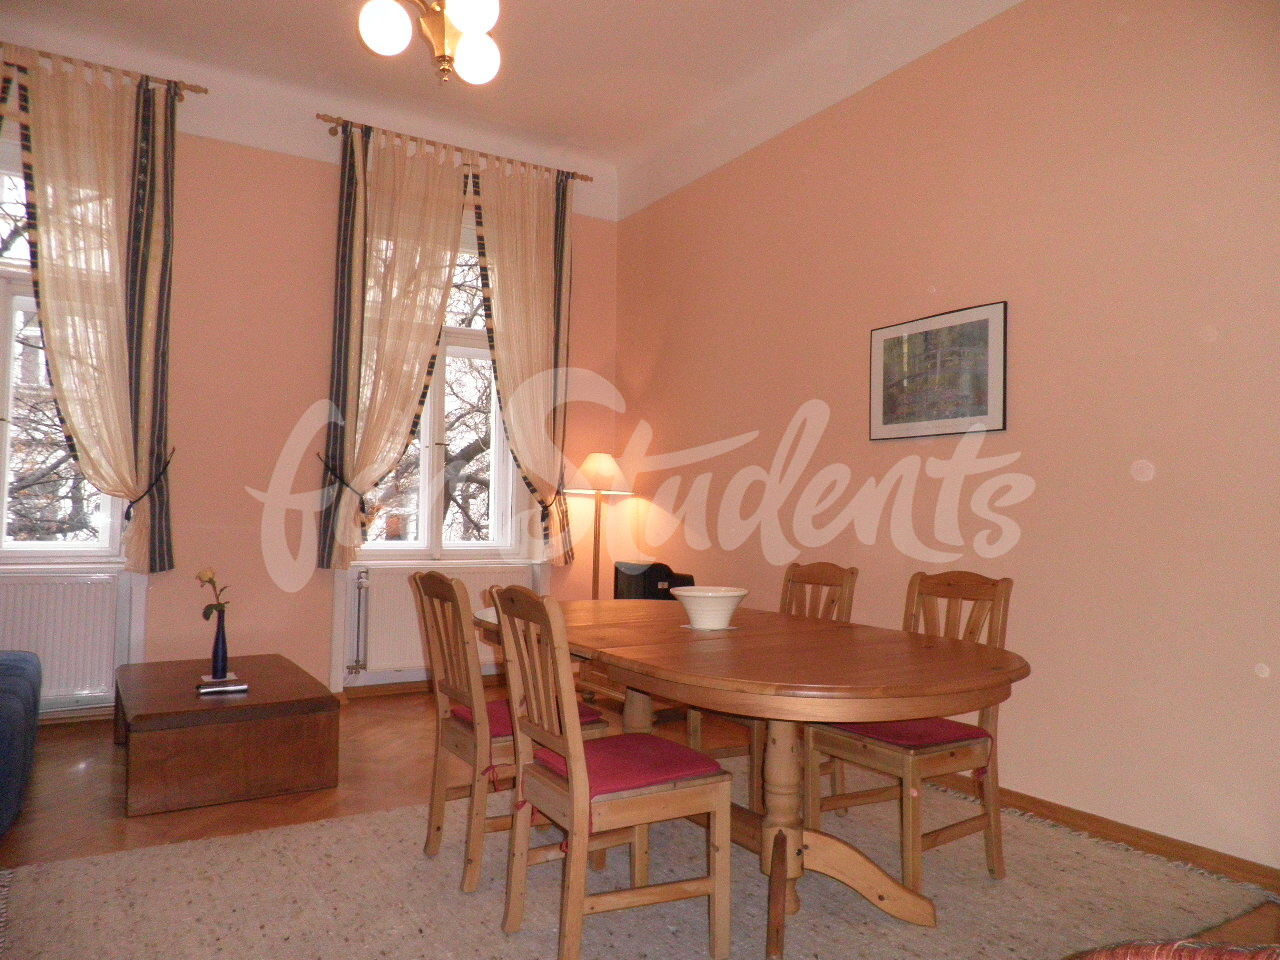 One bedroom apartment in Vinohrady, Prague